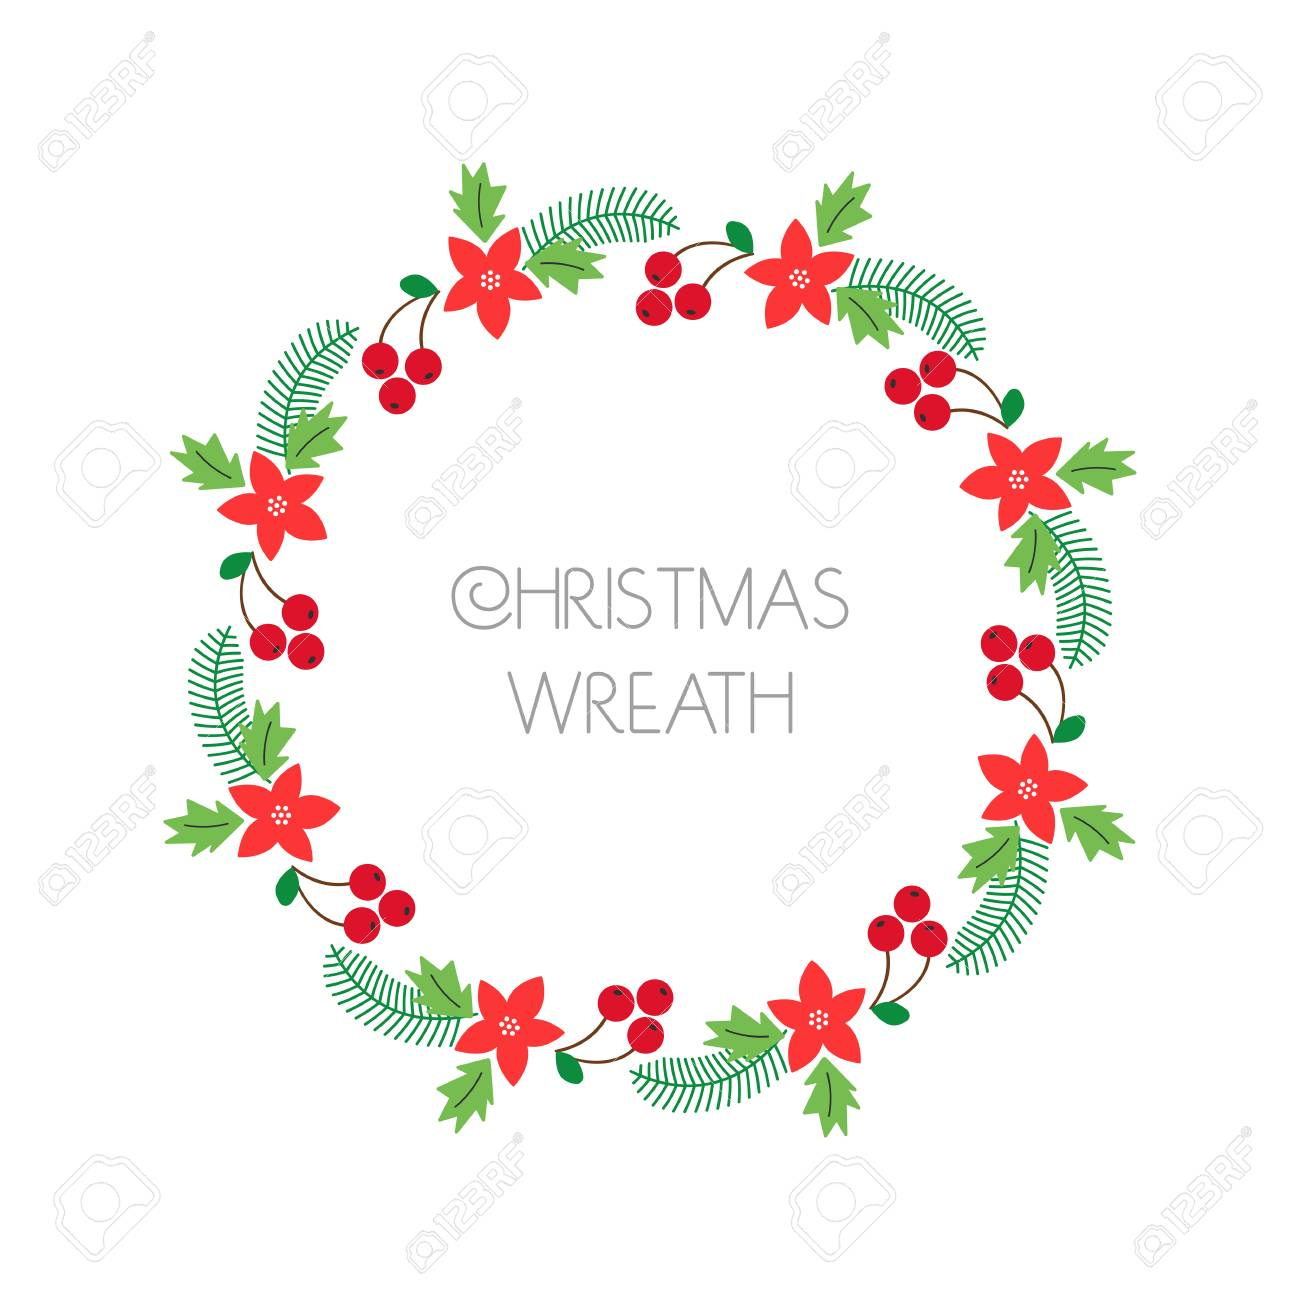 Christmas Cards To Print.Christmas Wreath With Rowanberry Fir Branches Poinsettia Round